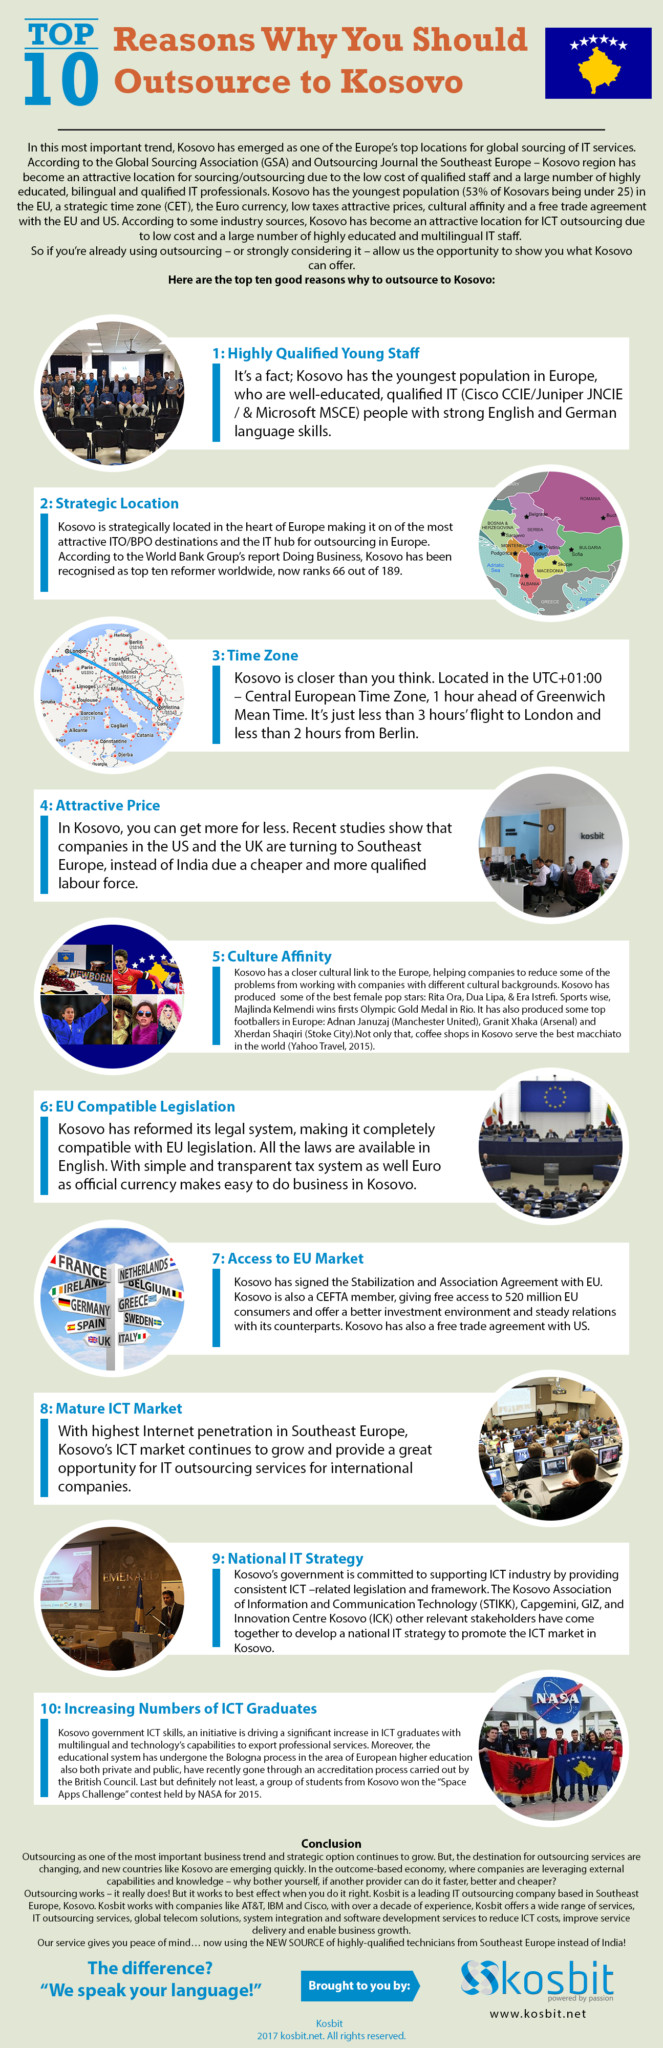 Top-10-Reasons-Why-You-Should-Outsource-to-Kosovo_Kosbit_infographic